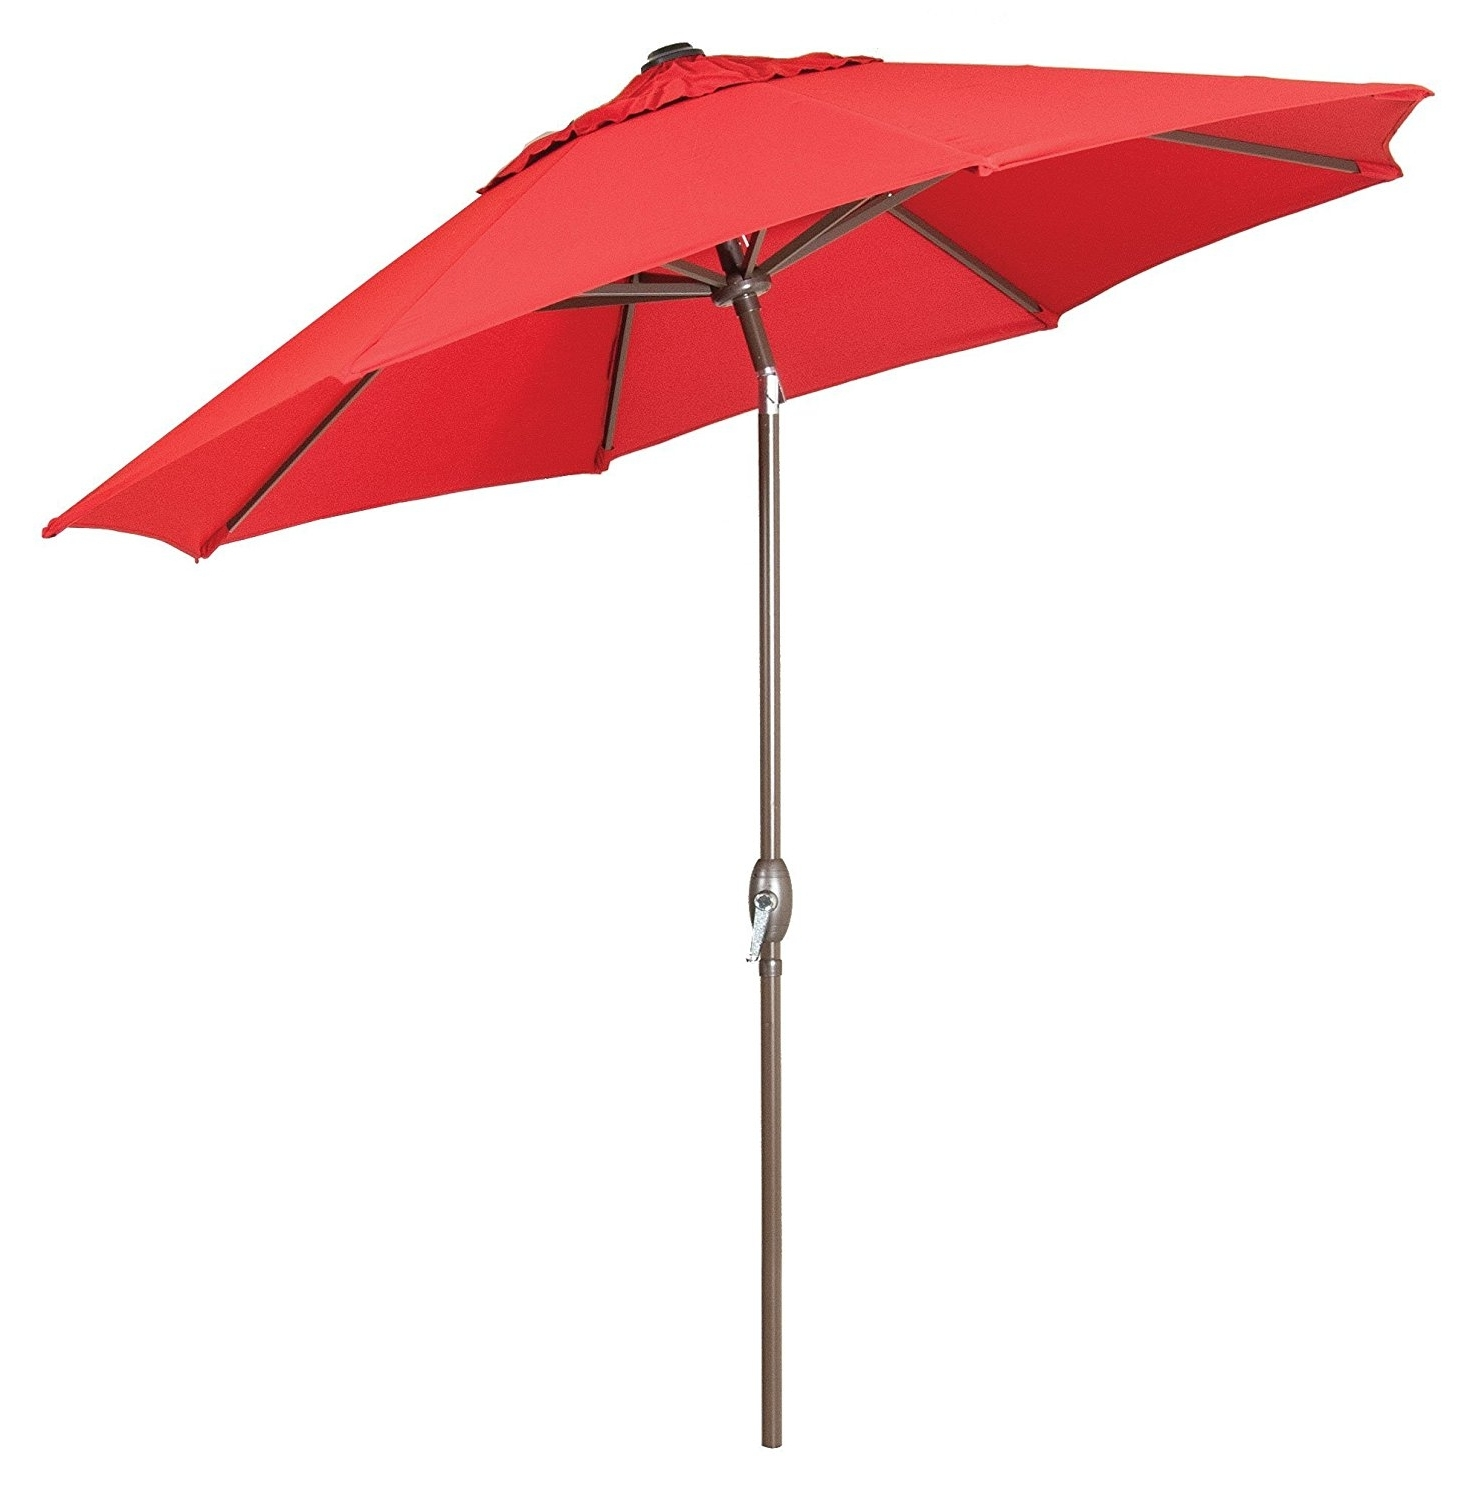 Industrial Patio Umbrellas Awesome Amazon Generic 9Ft Red Sunshade Within Favorite Amazon Patio Umbrellas (View 12 of 20)